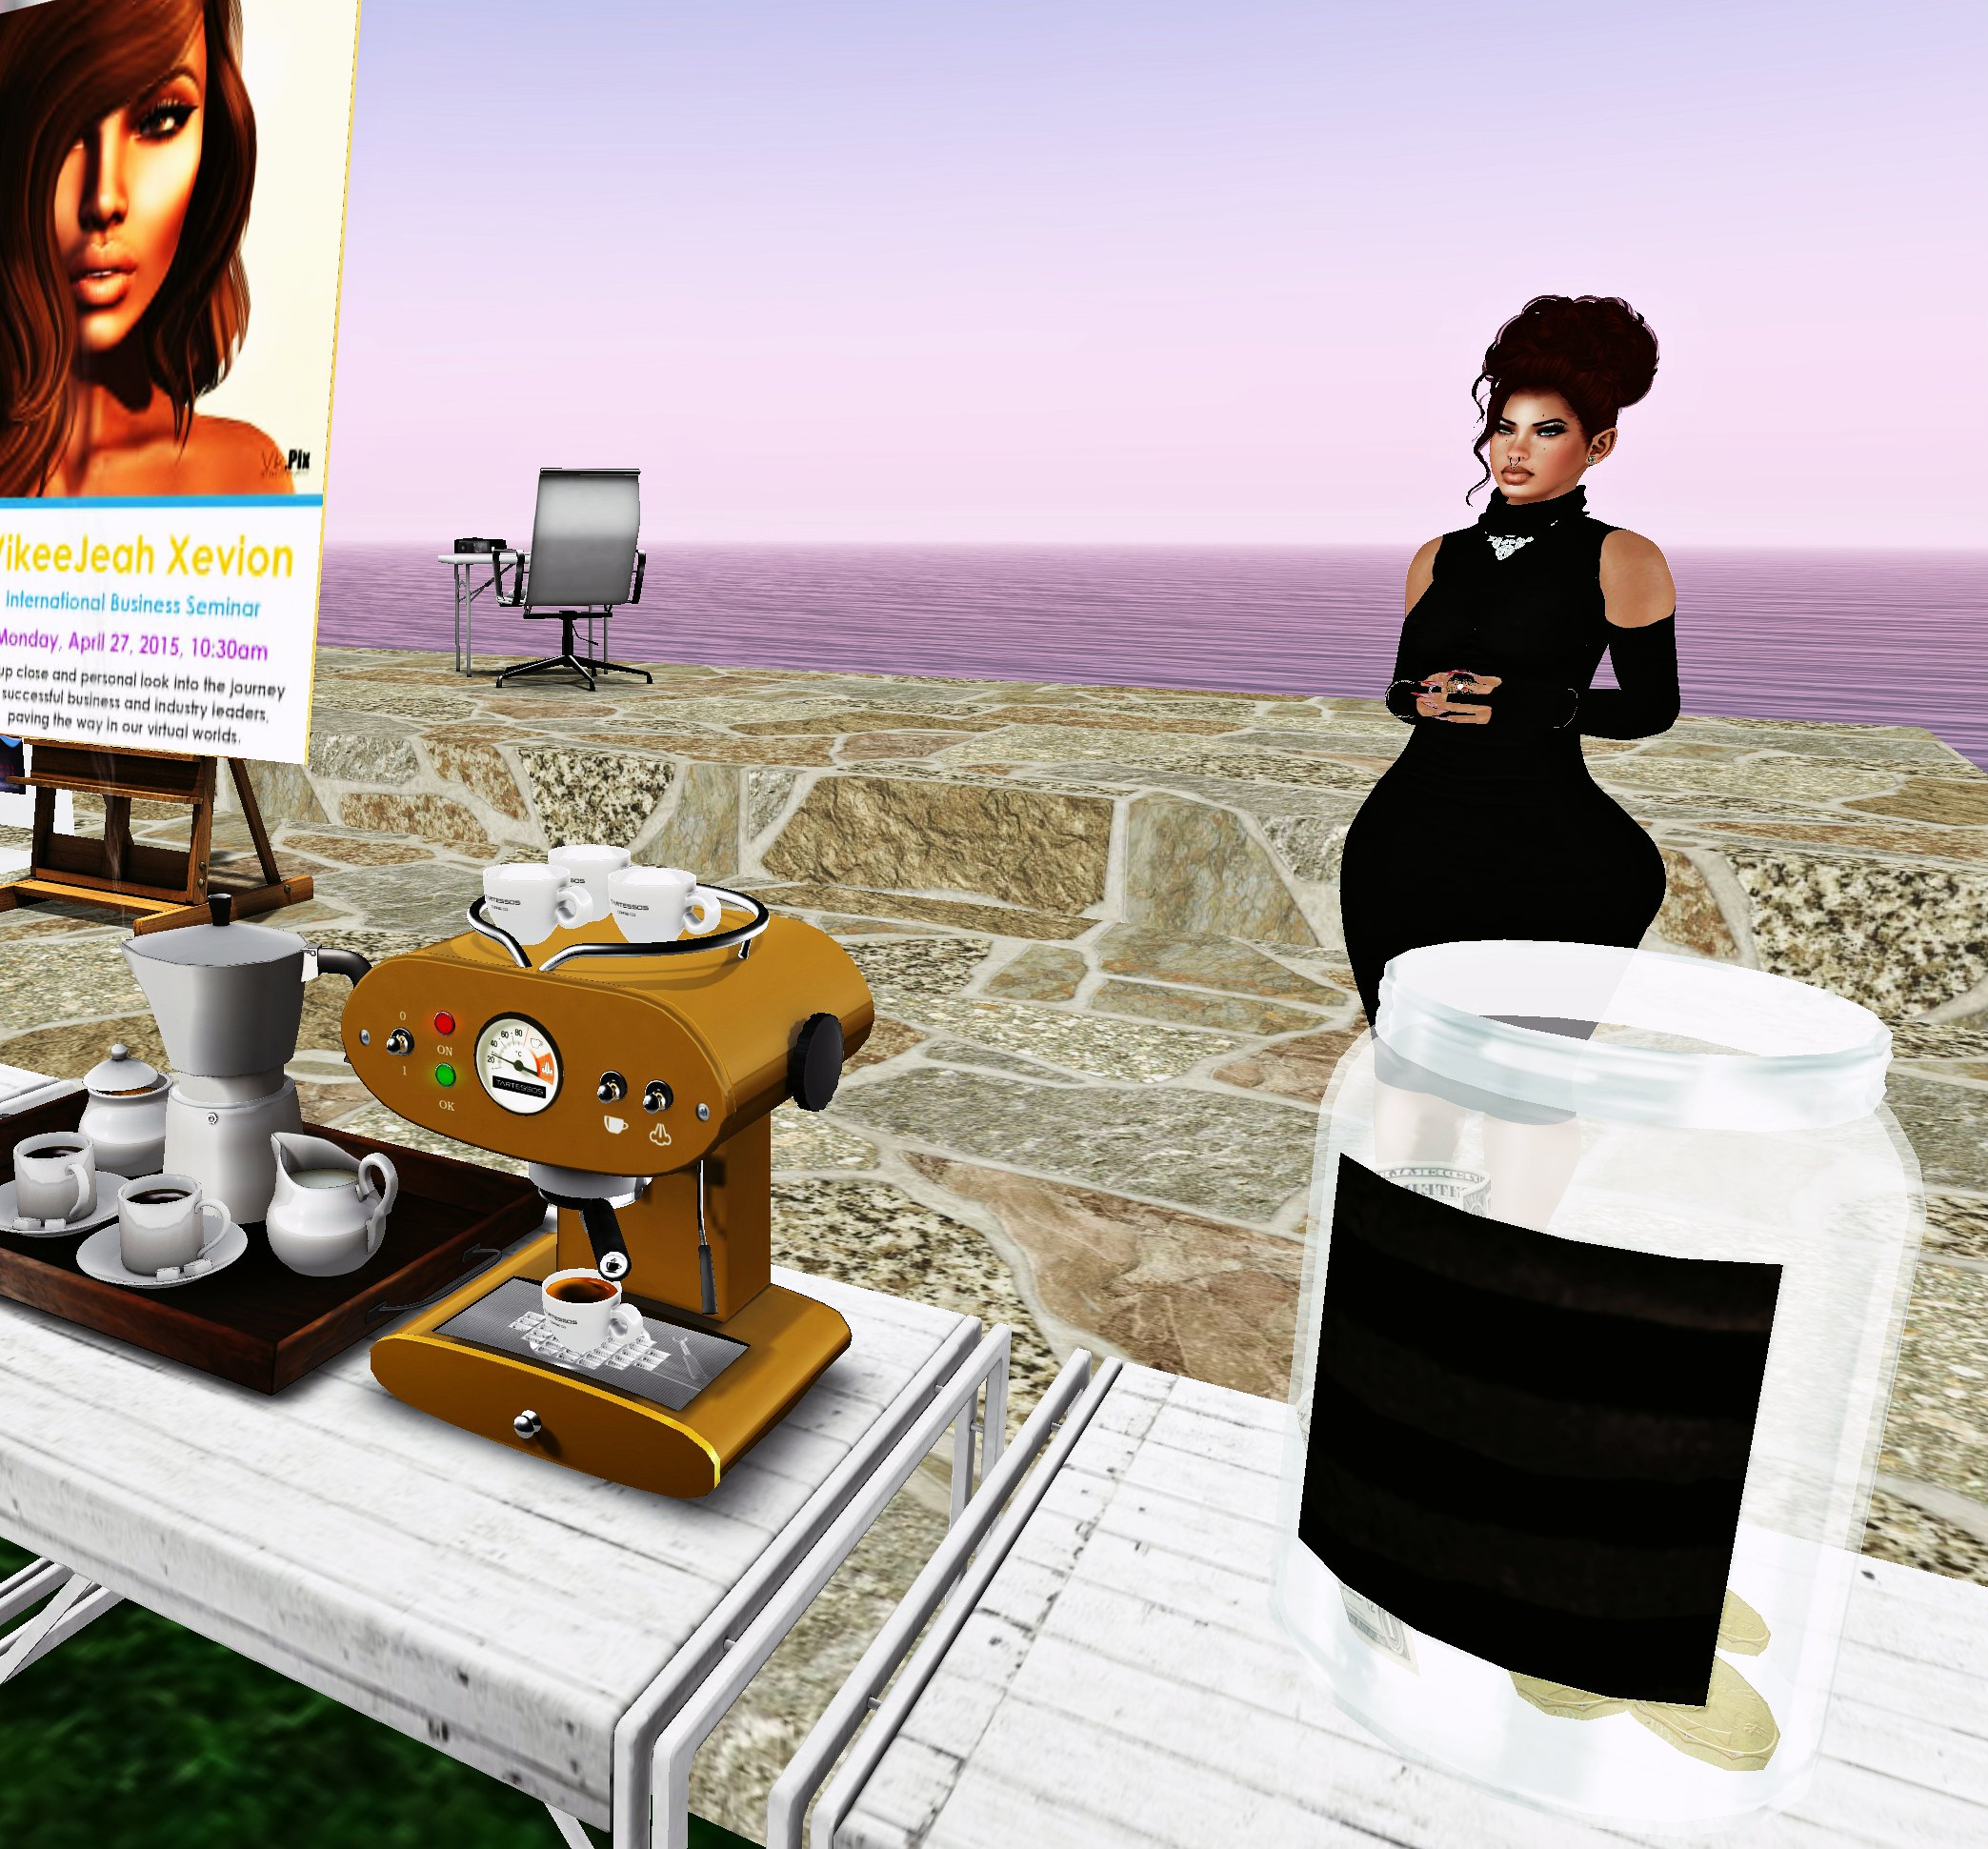 VIRTUALVillage Media - International Business Seminar